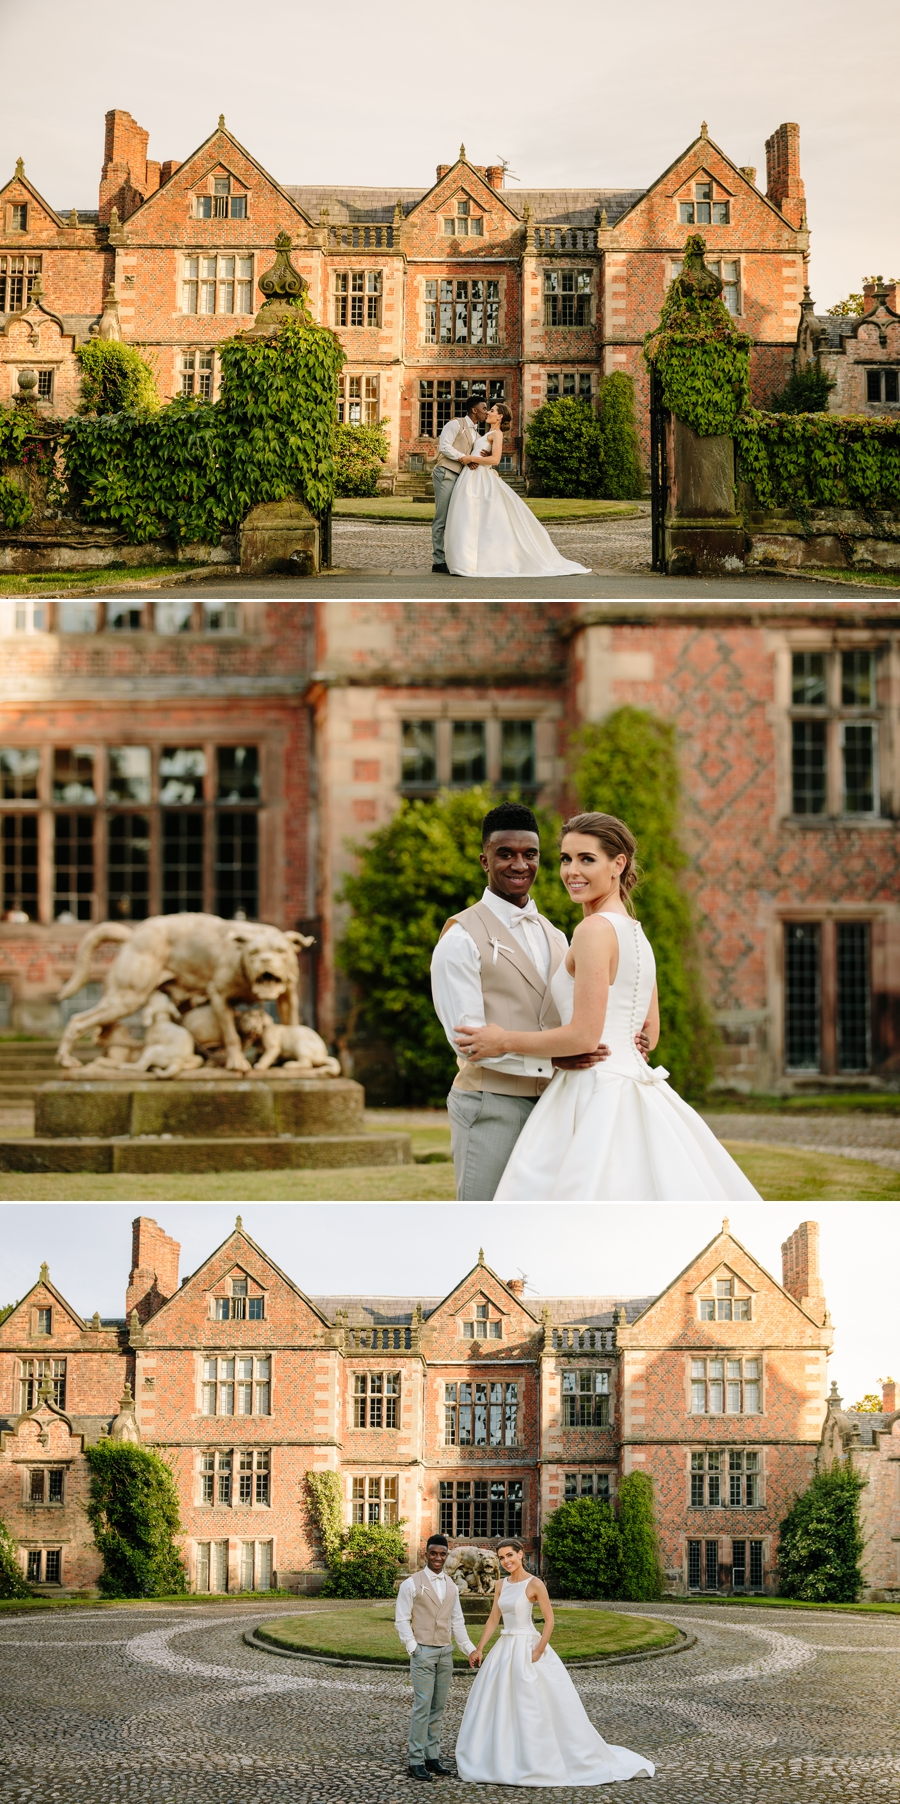 Bride and groom in front of Dorfold Hall